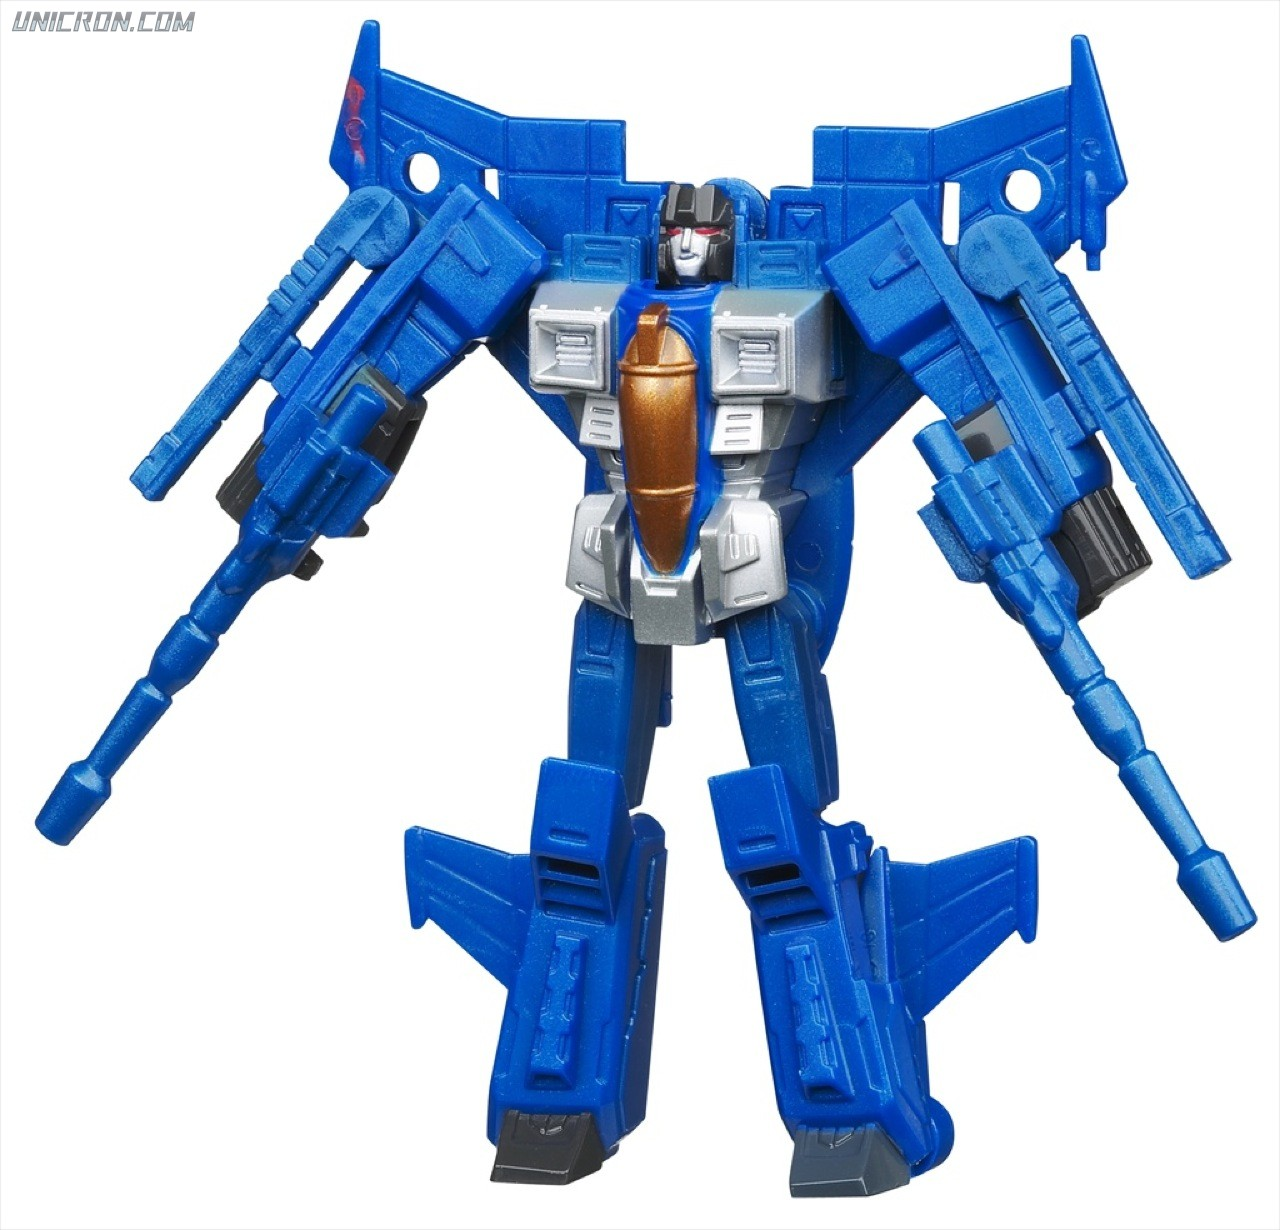 Transformers Generations Thundercracker toy